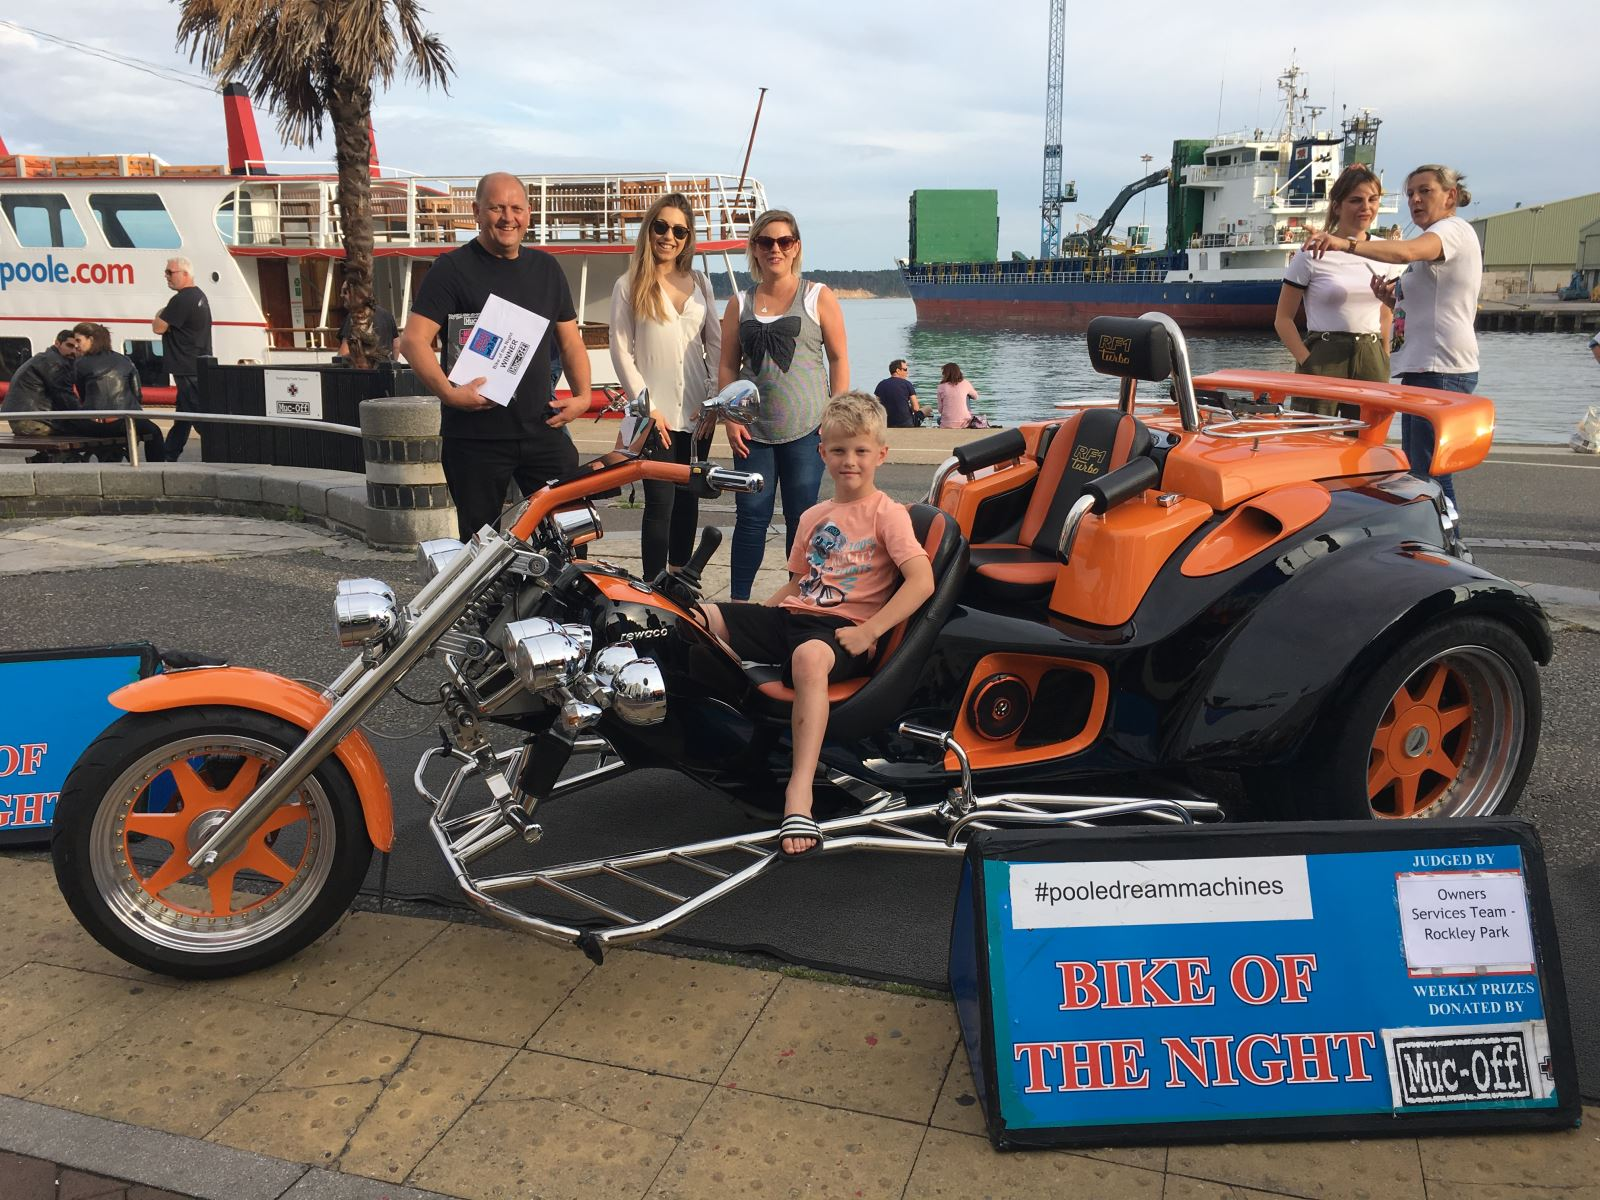 Winning motorbike pictured on Poole Quay with people around it.